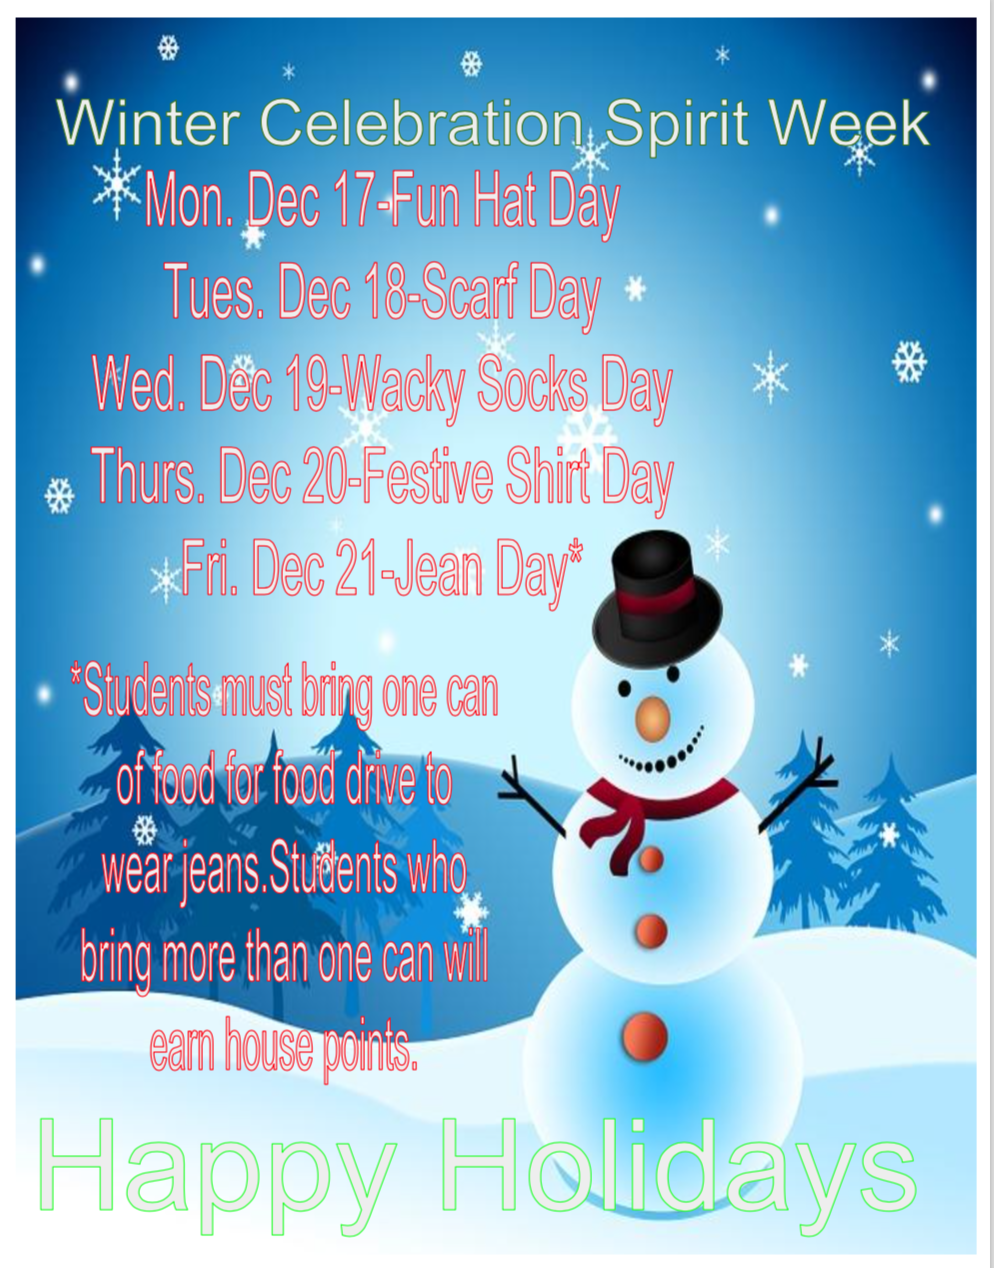 Winter Celebration Spirit Week